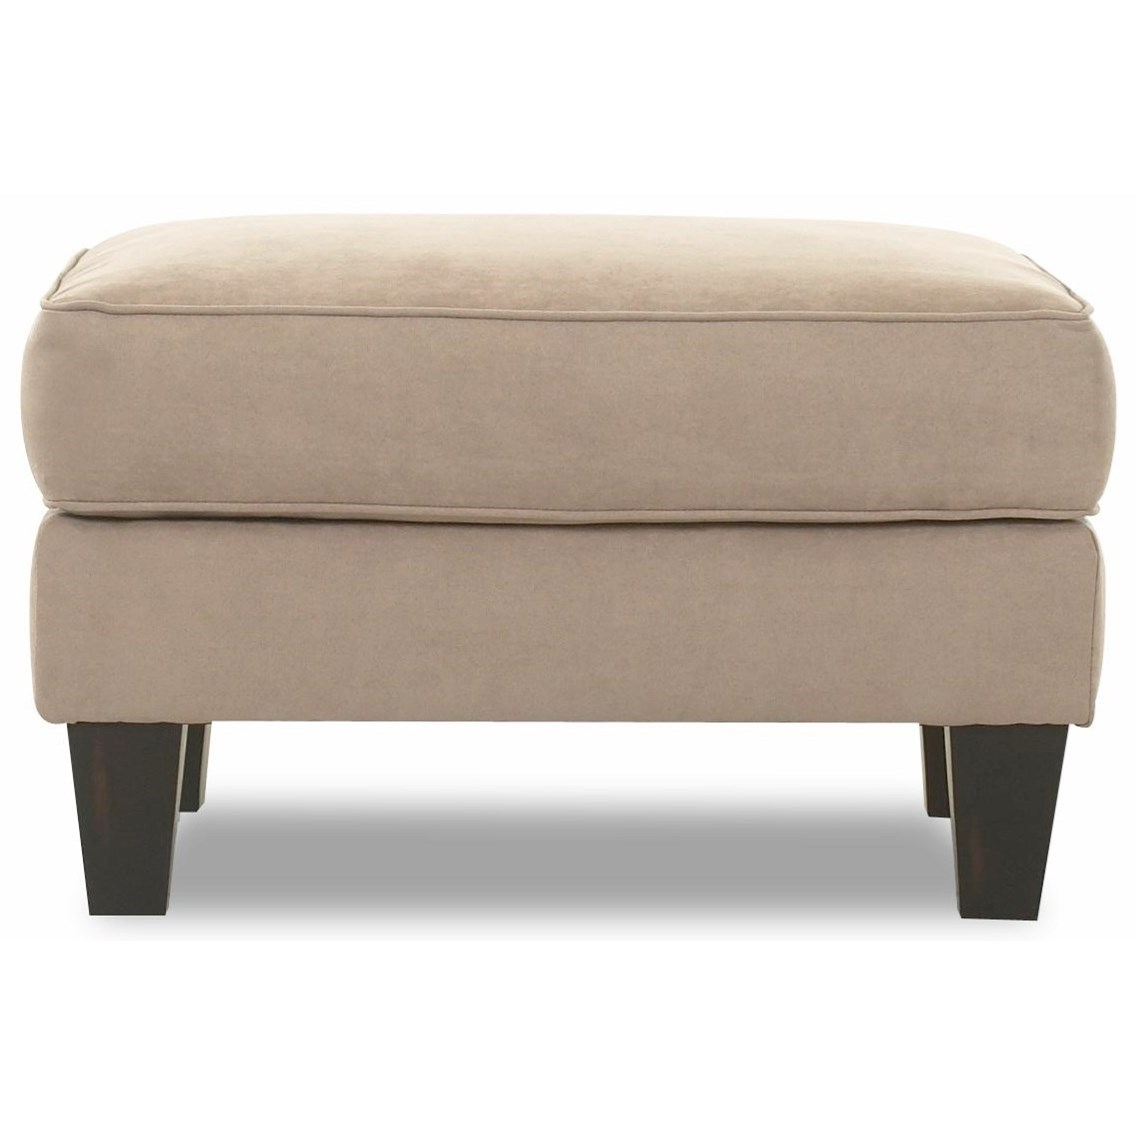 Klaussner Kris Upholstered Ottoman - Item Number: B98900 OTTO